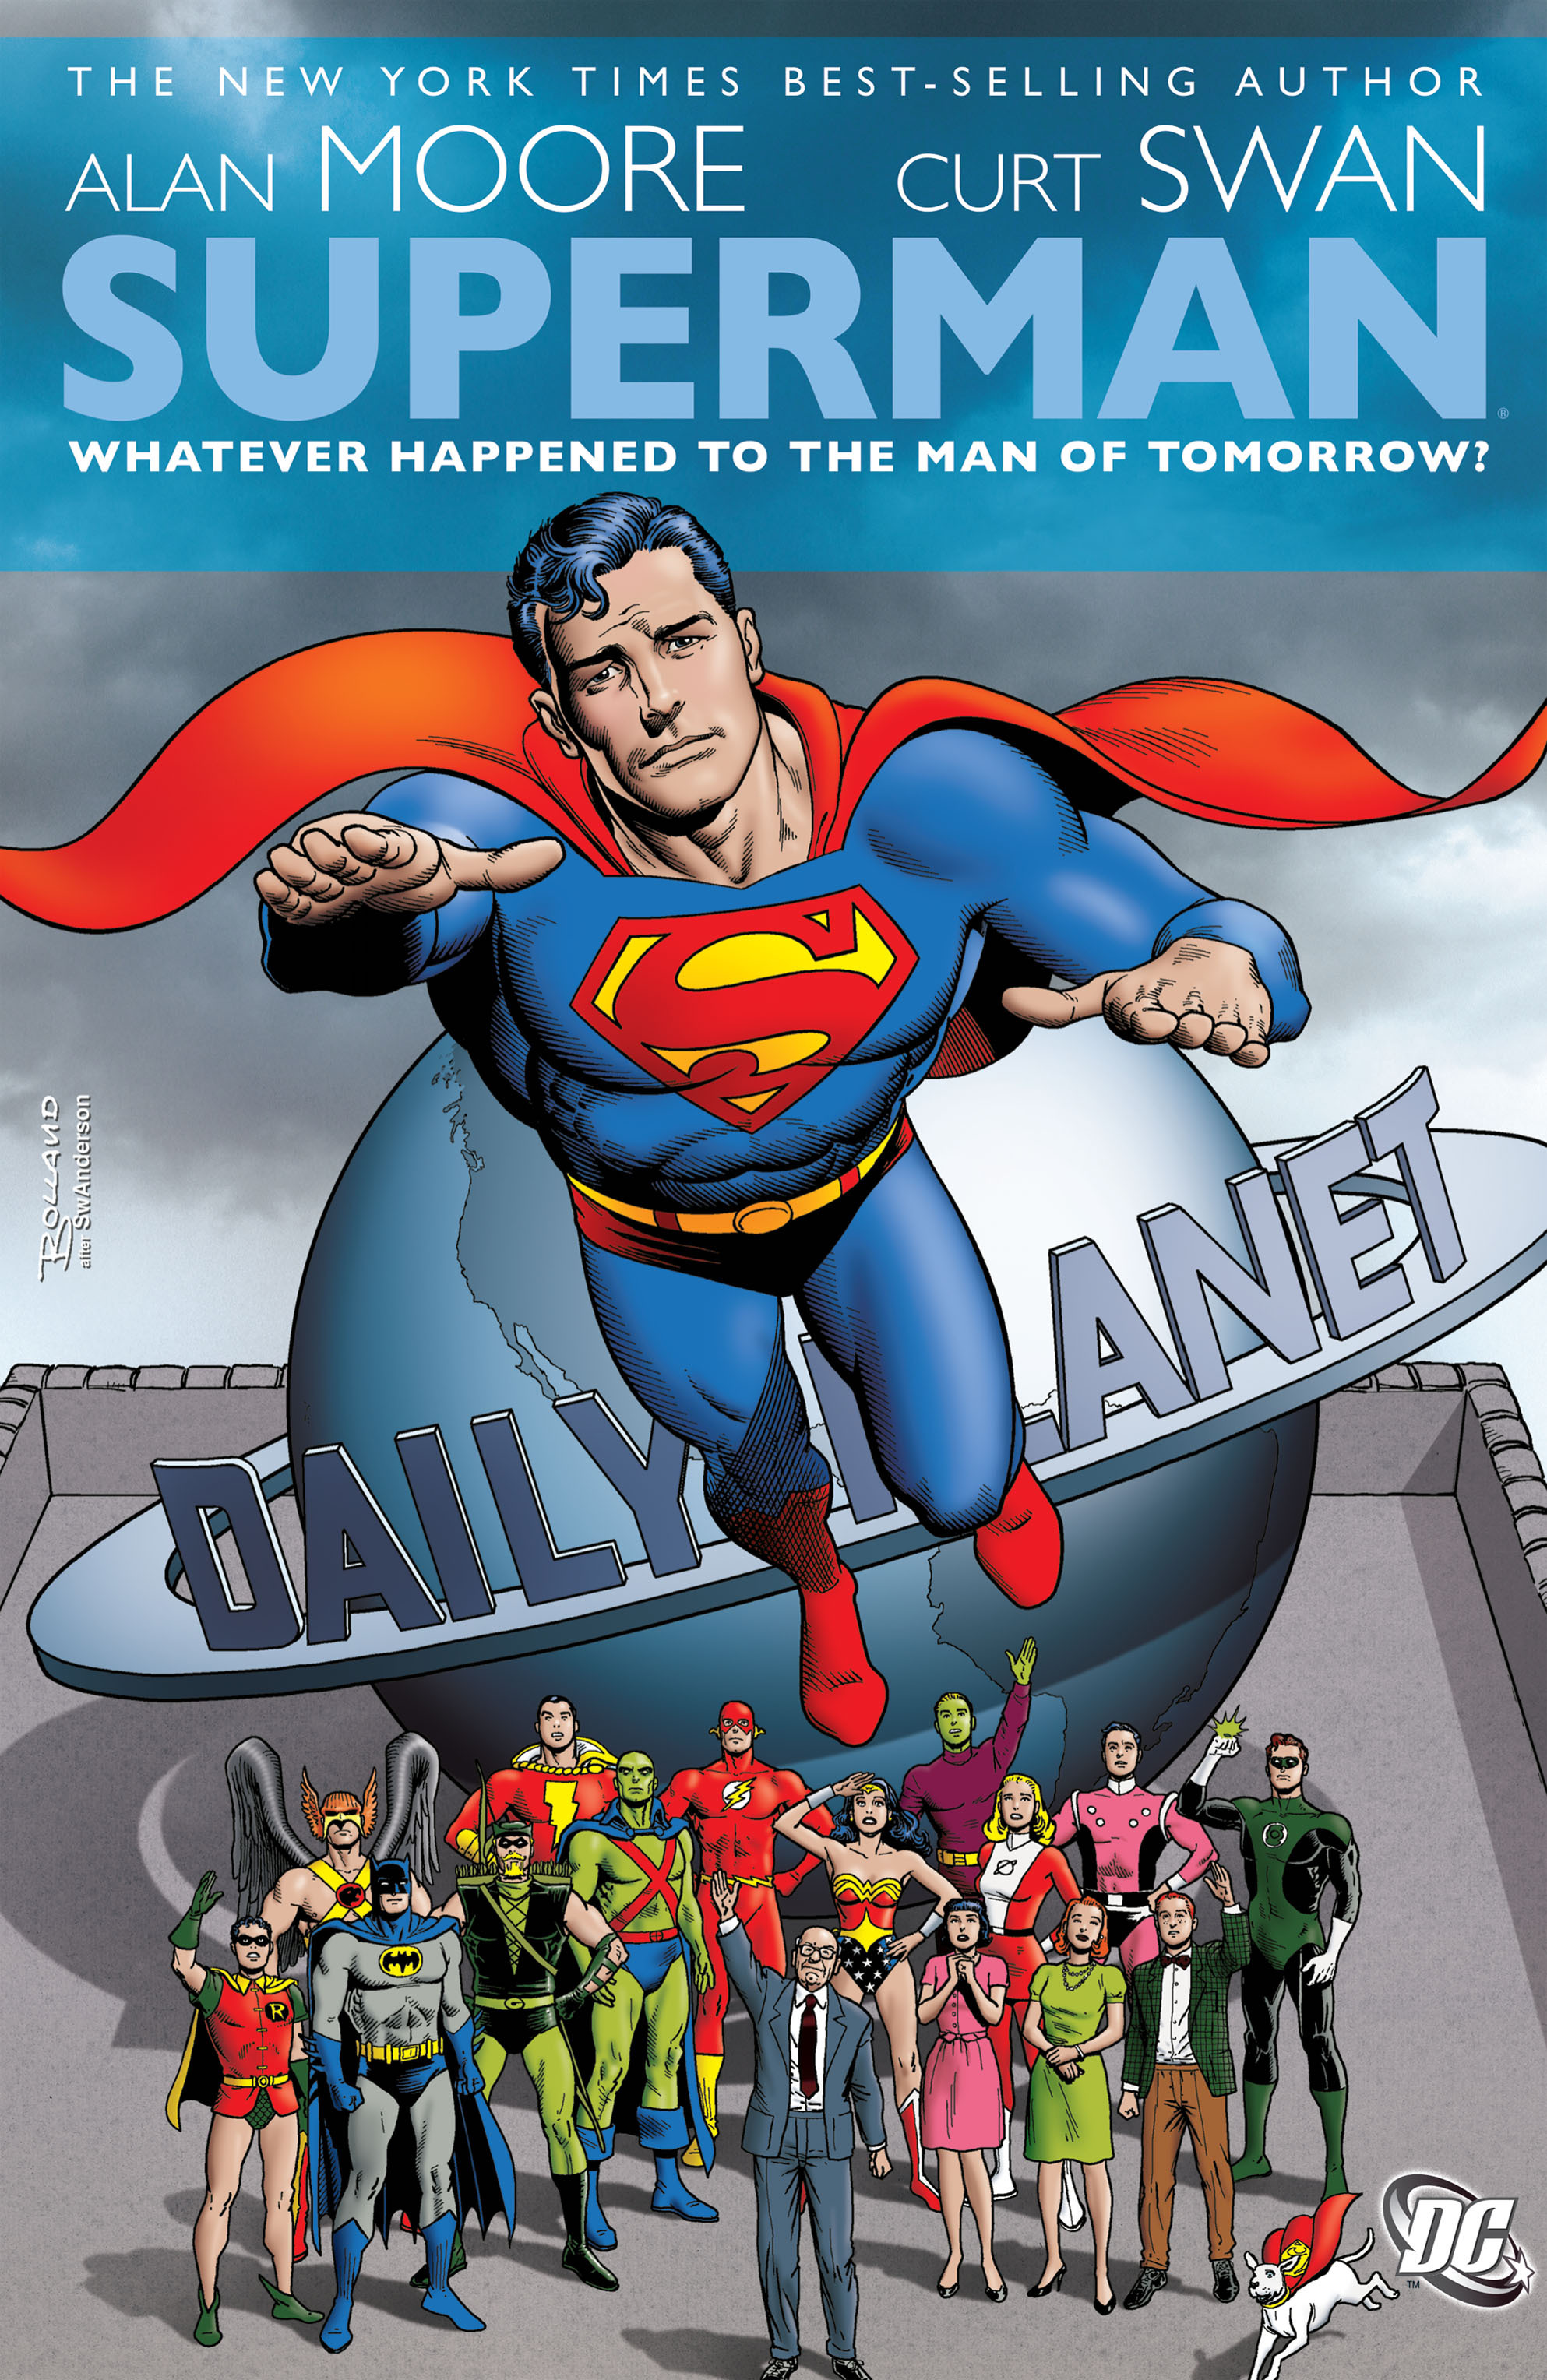 Read online Superman: Whatever Happened to the Man of Tomorrow? comic -  Issue # TPB - 1